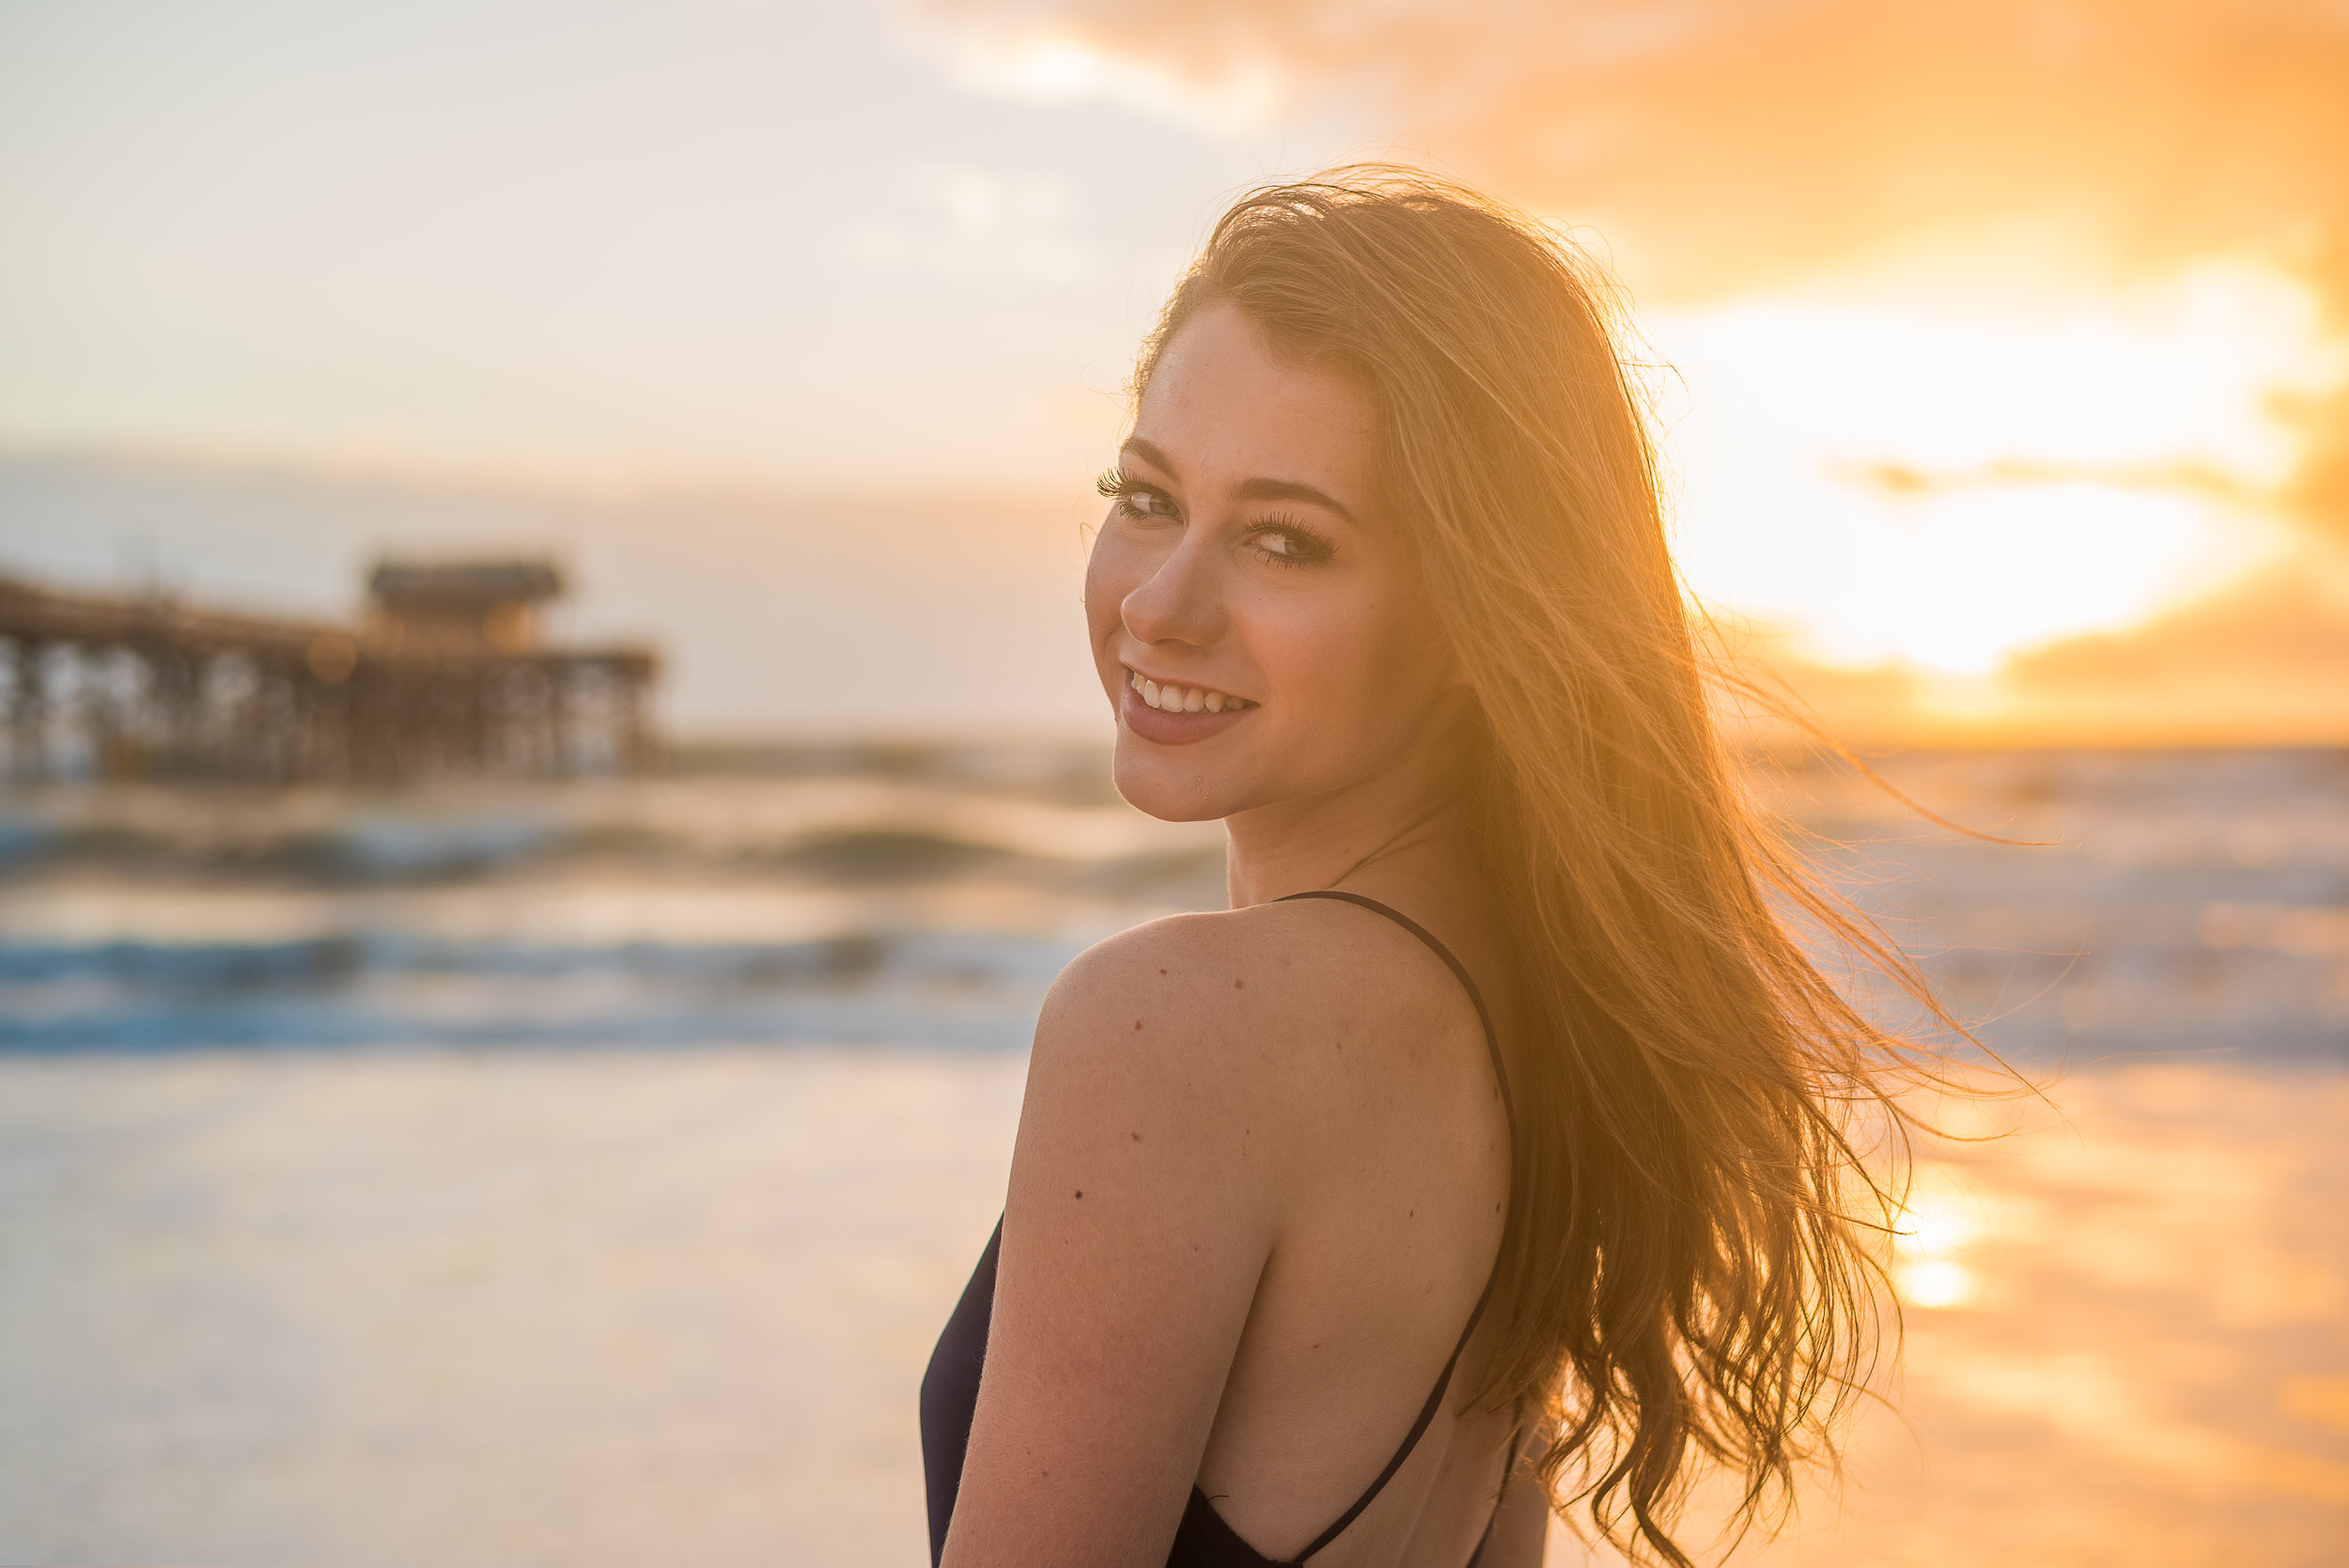 heather-senior-picture-sunrise-1-6.jpg